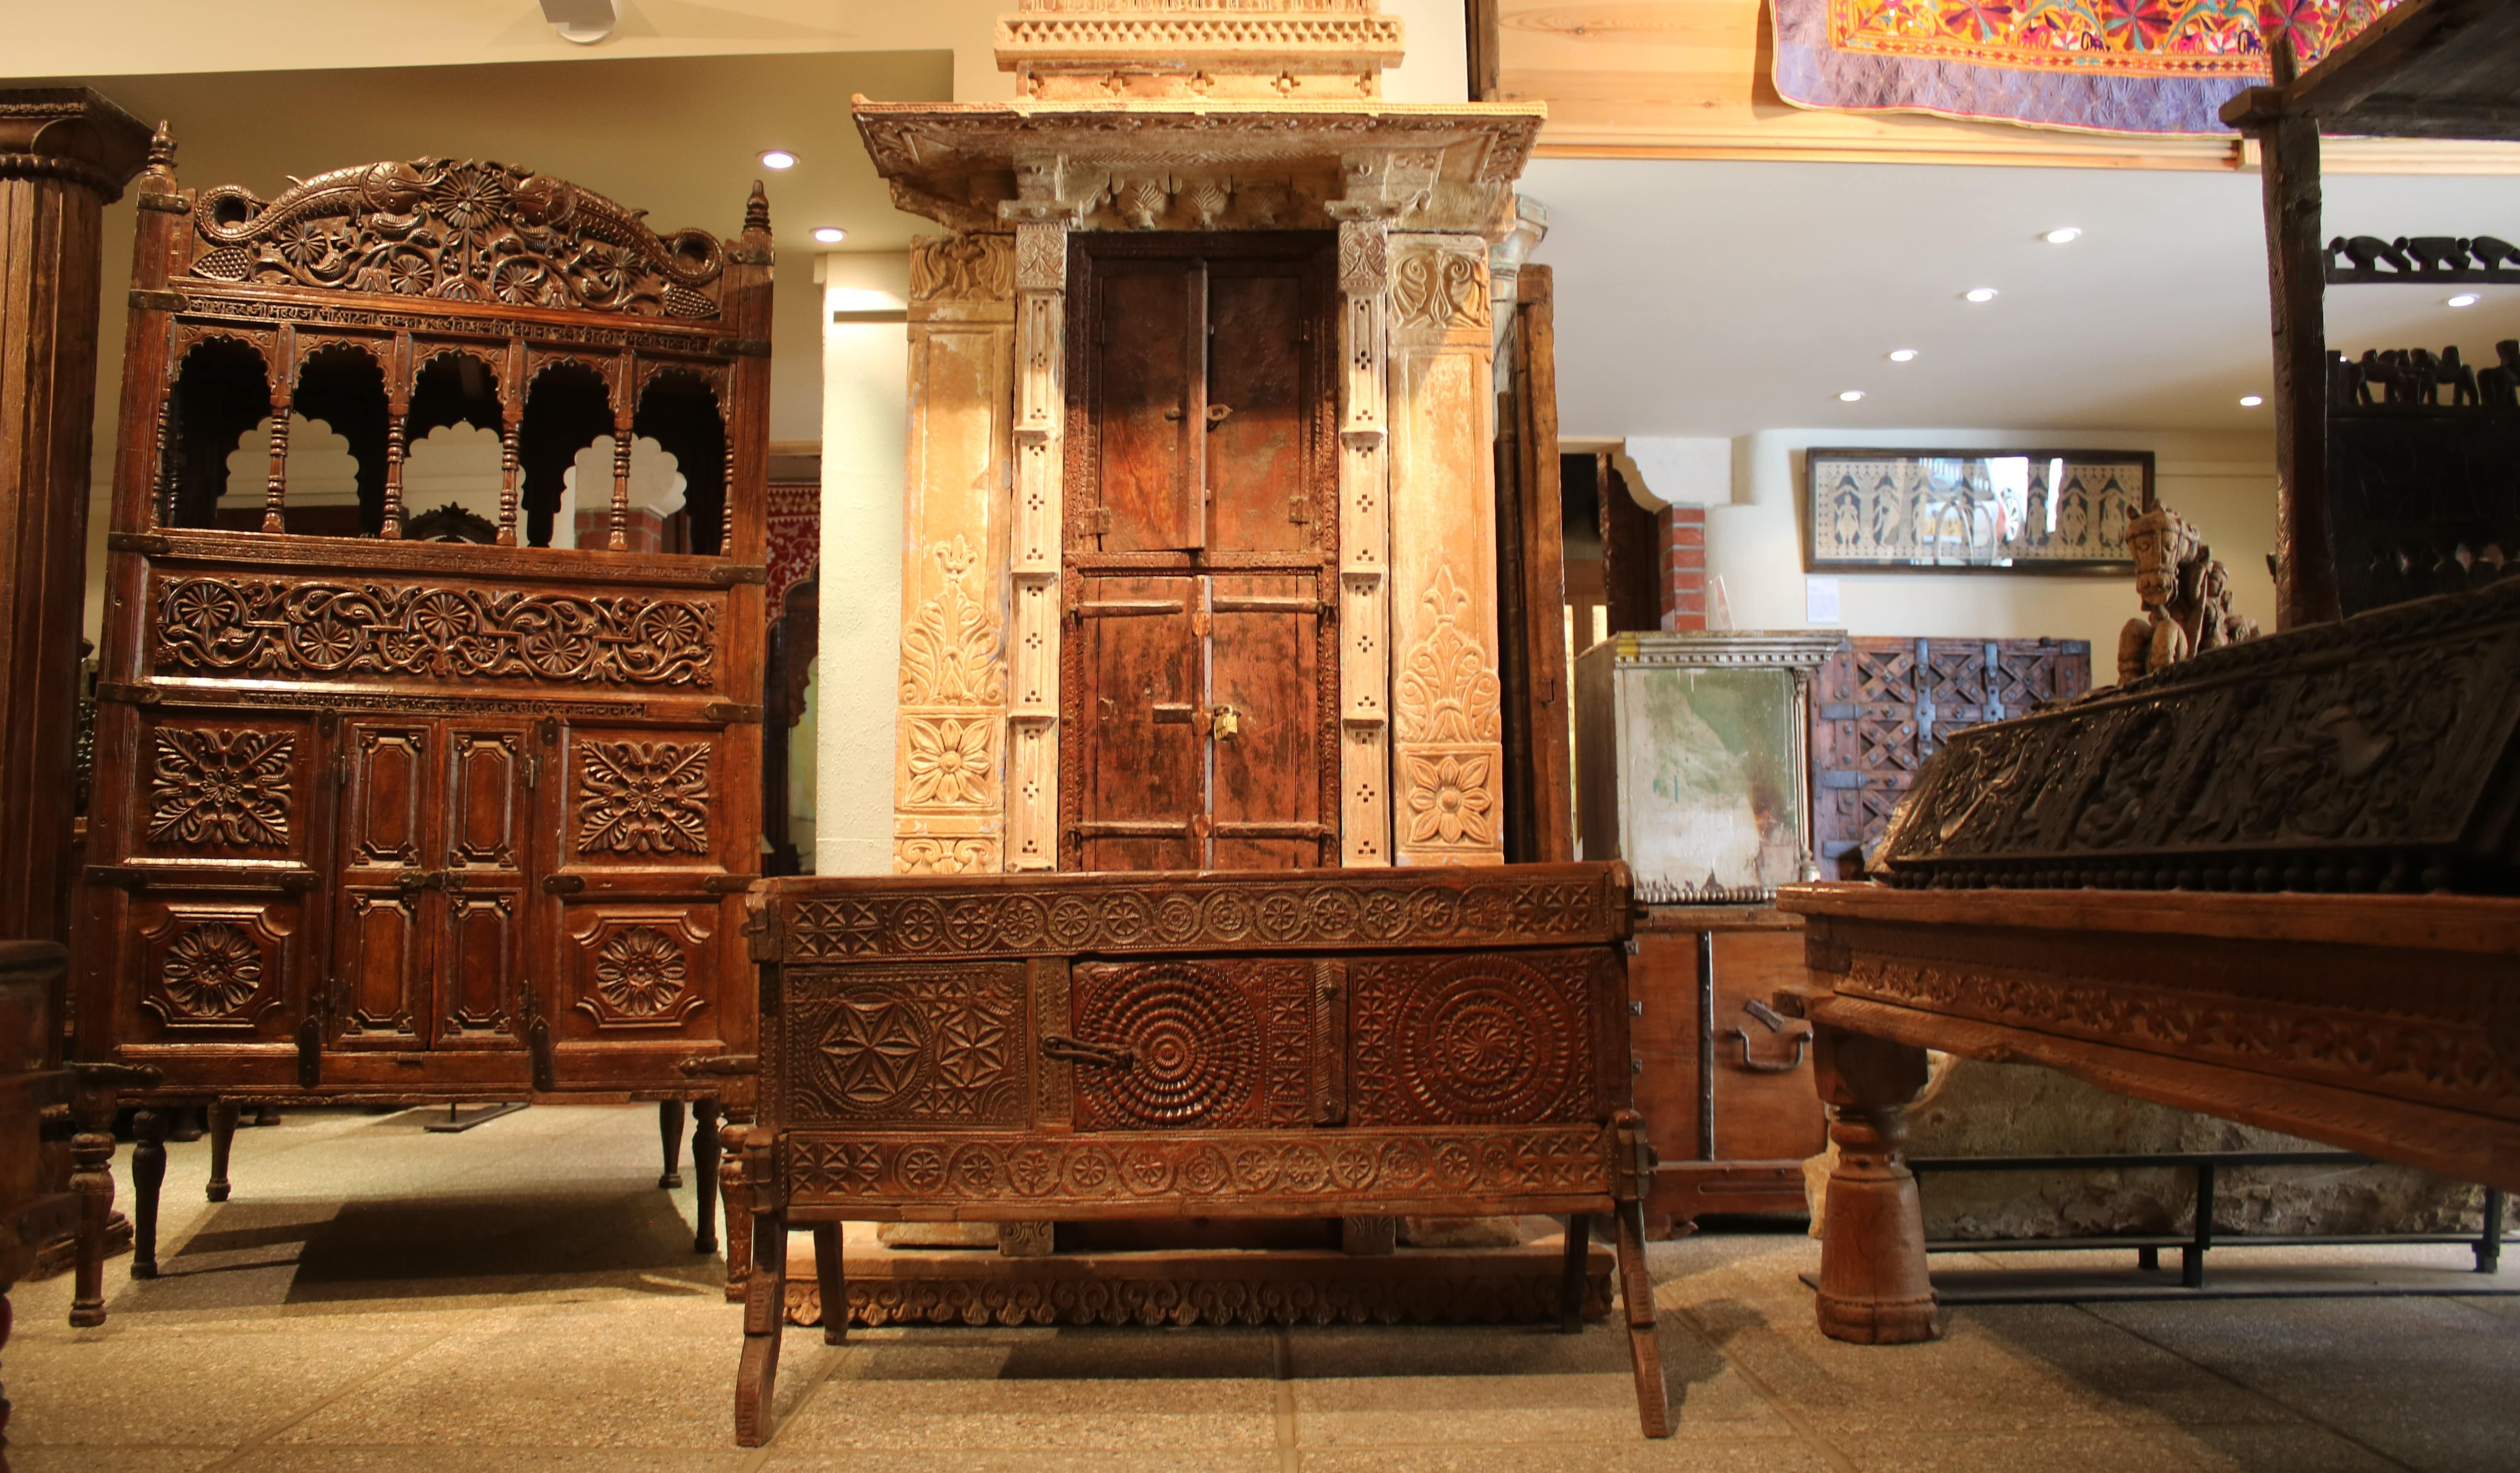 South Asian Decorative Arts and Crafts